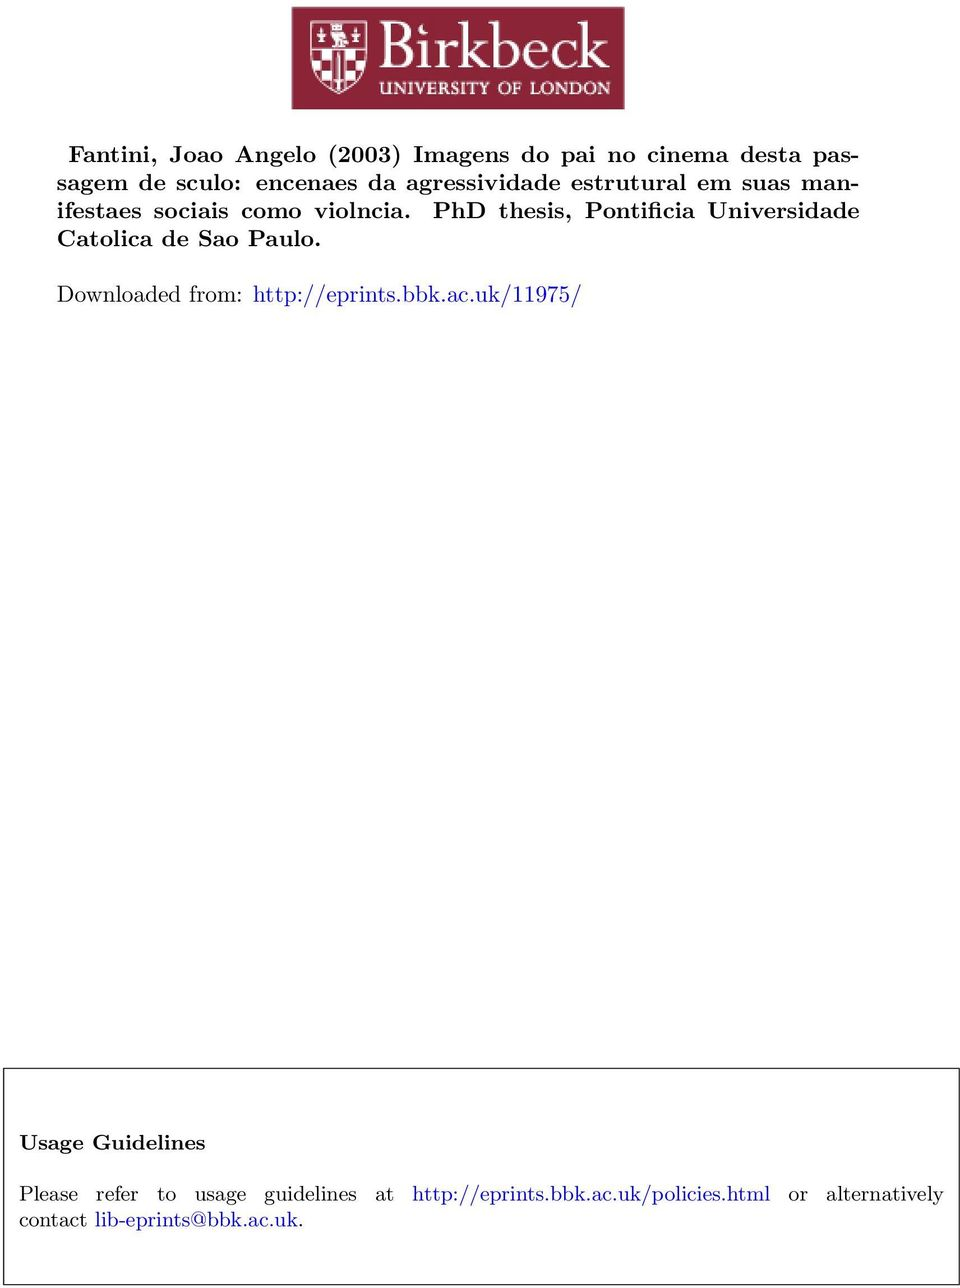 PhD thesis, Pontificia Universidade Catolica de Sao Paulo. Downloaded from: http://eprints.bbk.ac.